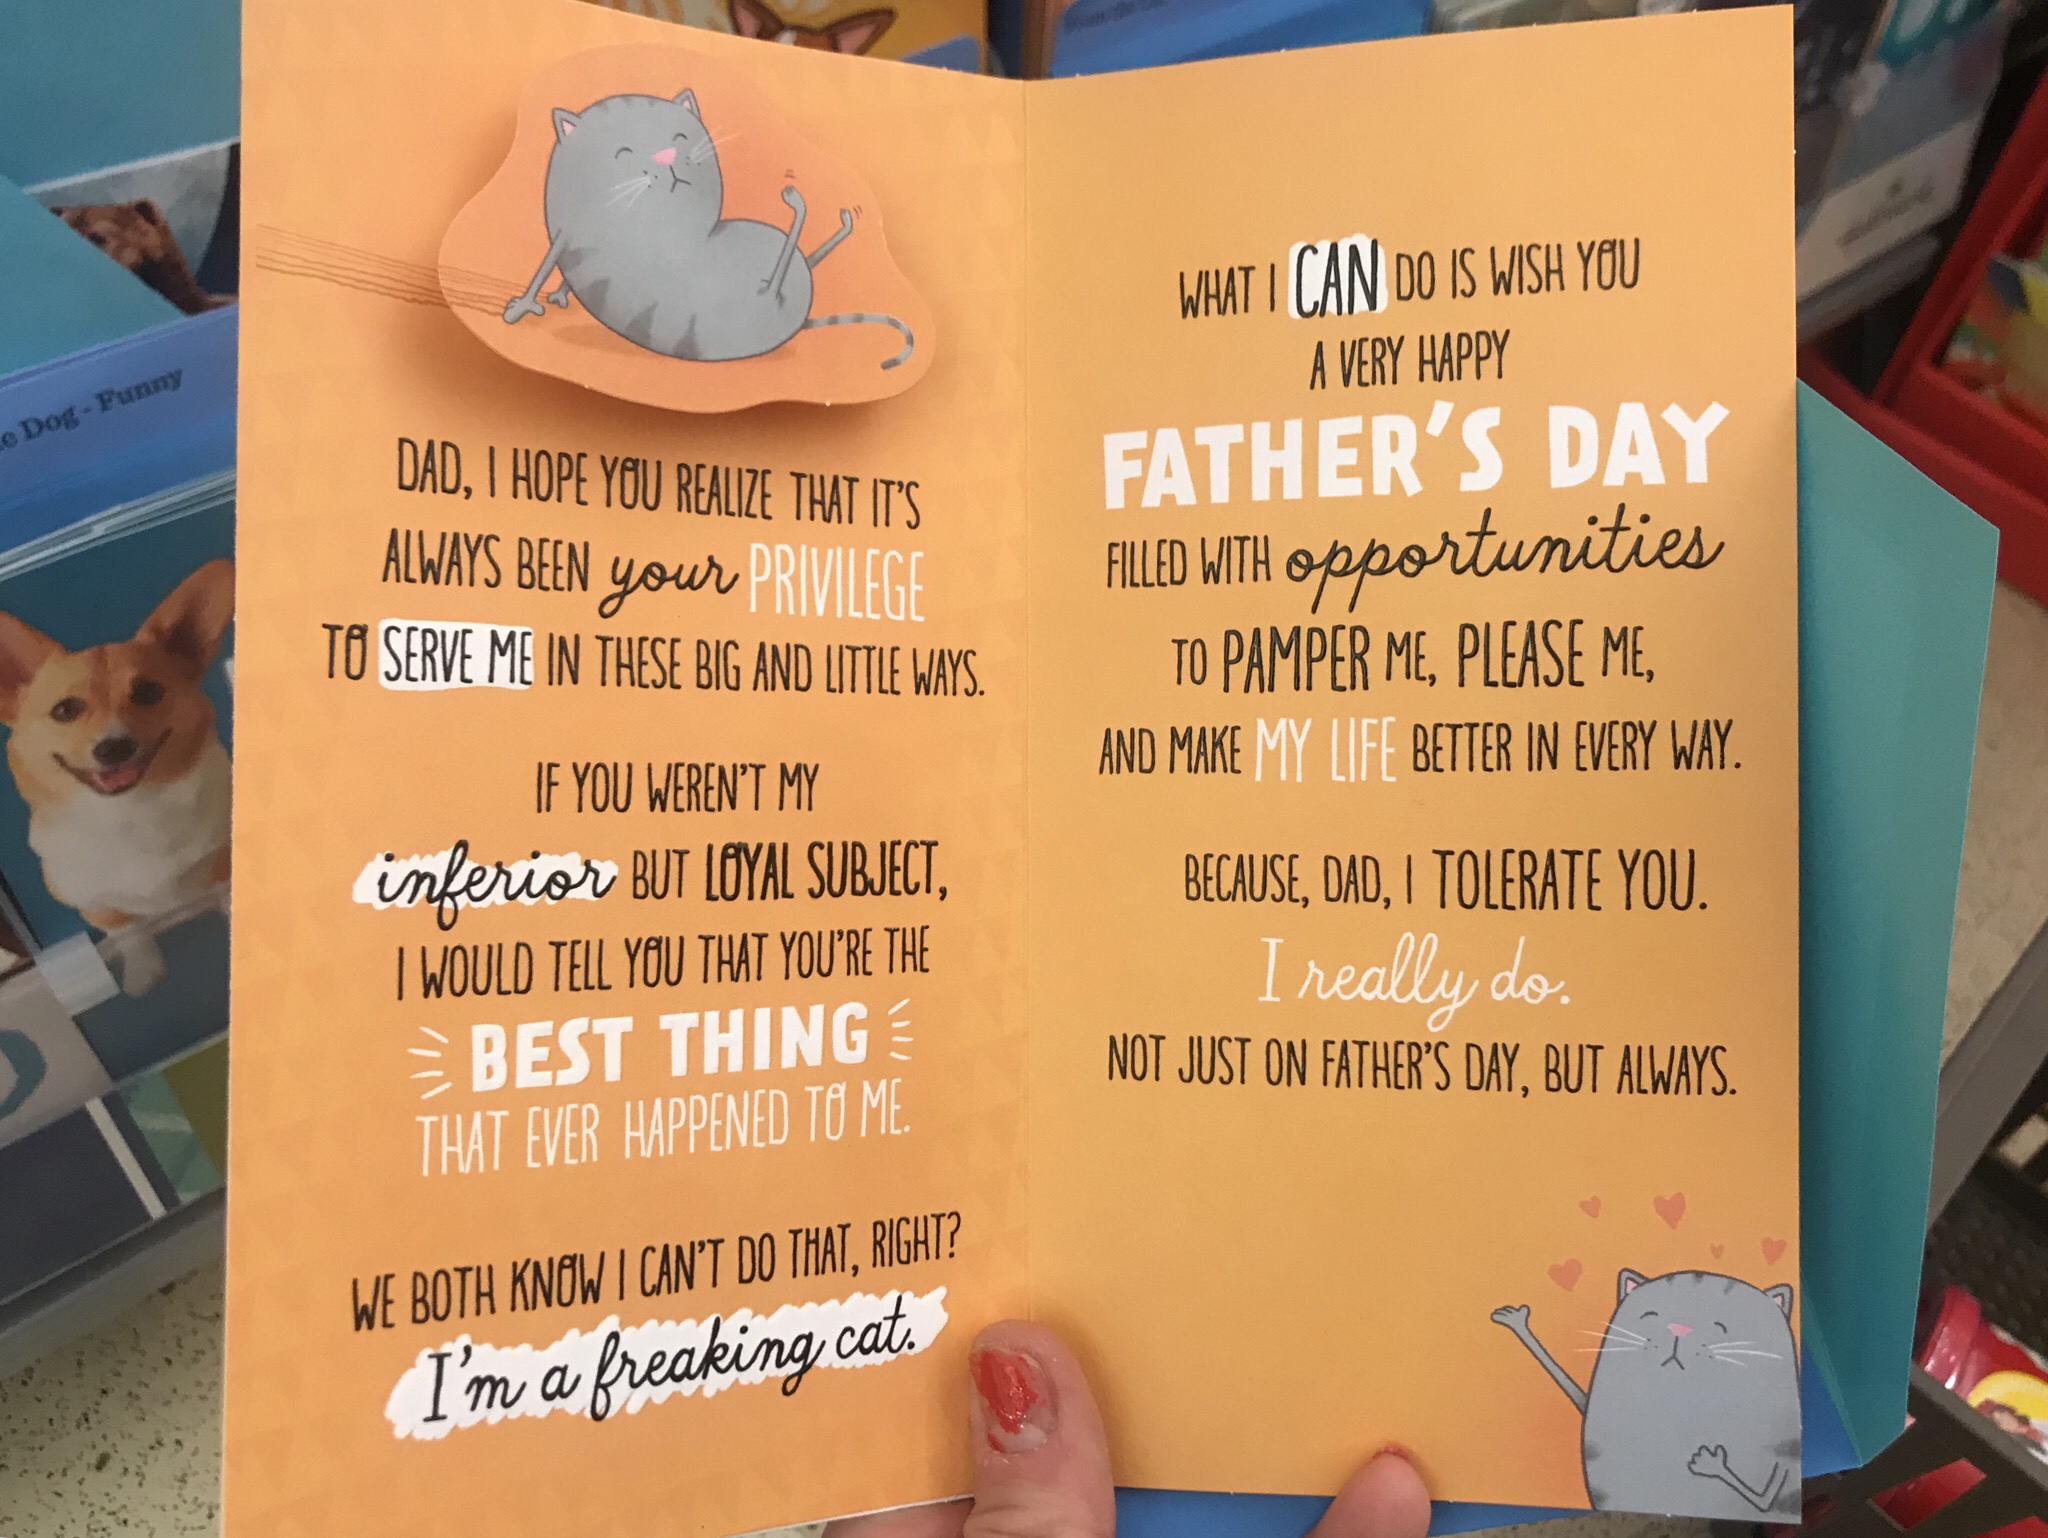 I did almost buy this father's day card for John and sign it from the cats, but I just sent him a picture to save $5 instead, lol. (He HATES the entire concept of calling pets your children, hah).